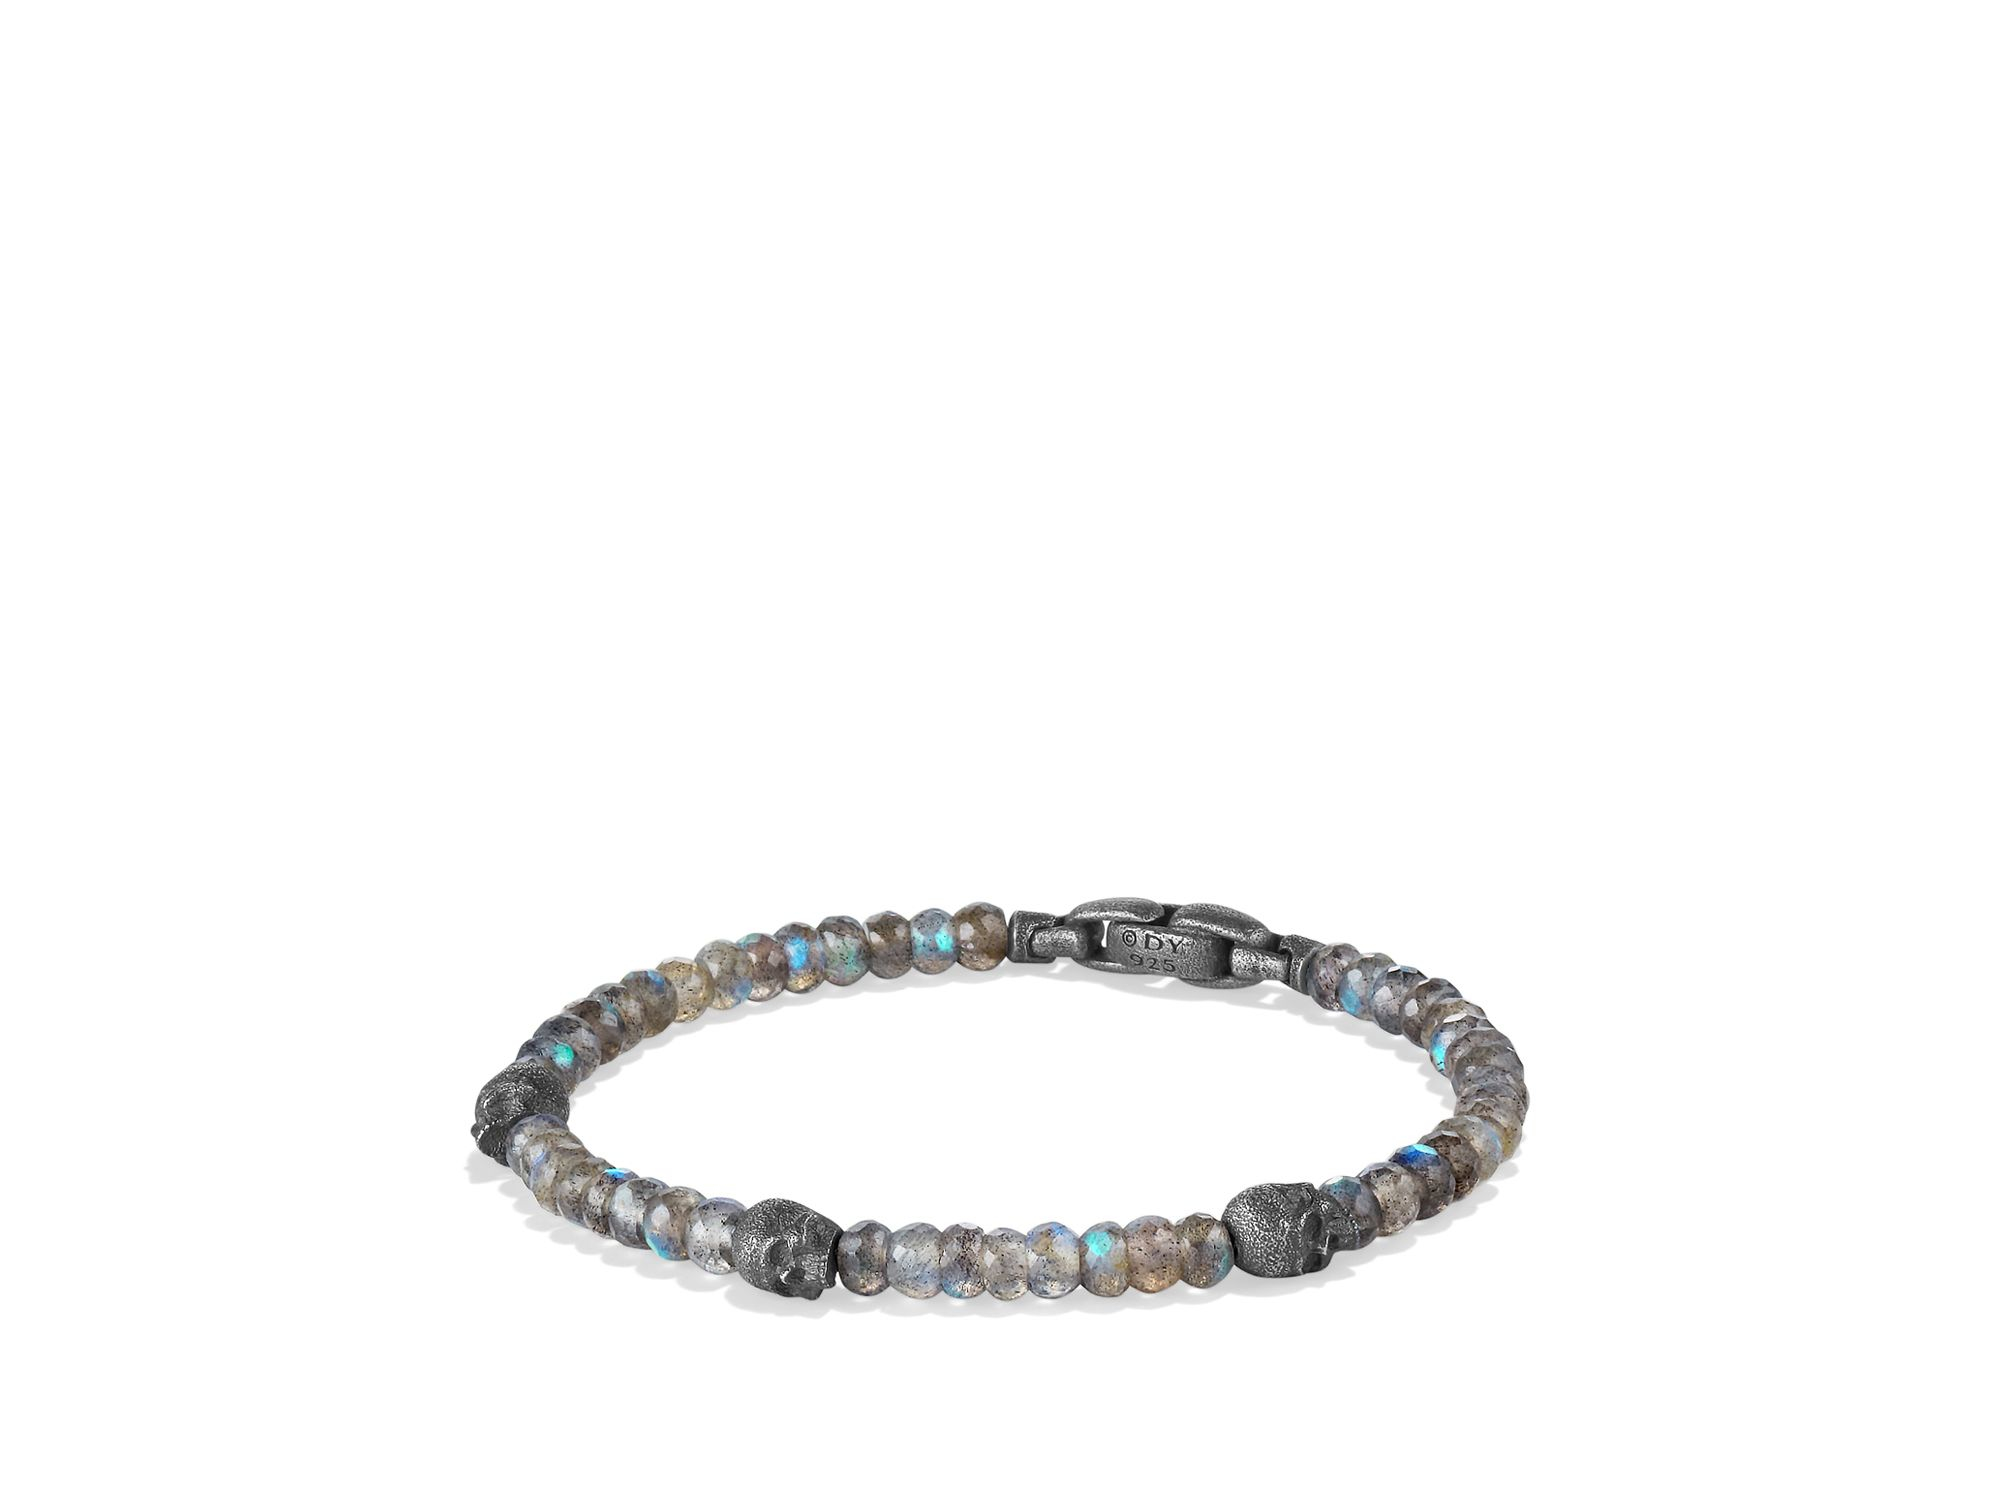 David Yurman Spiritual Beads Skull Station Bracelet In